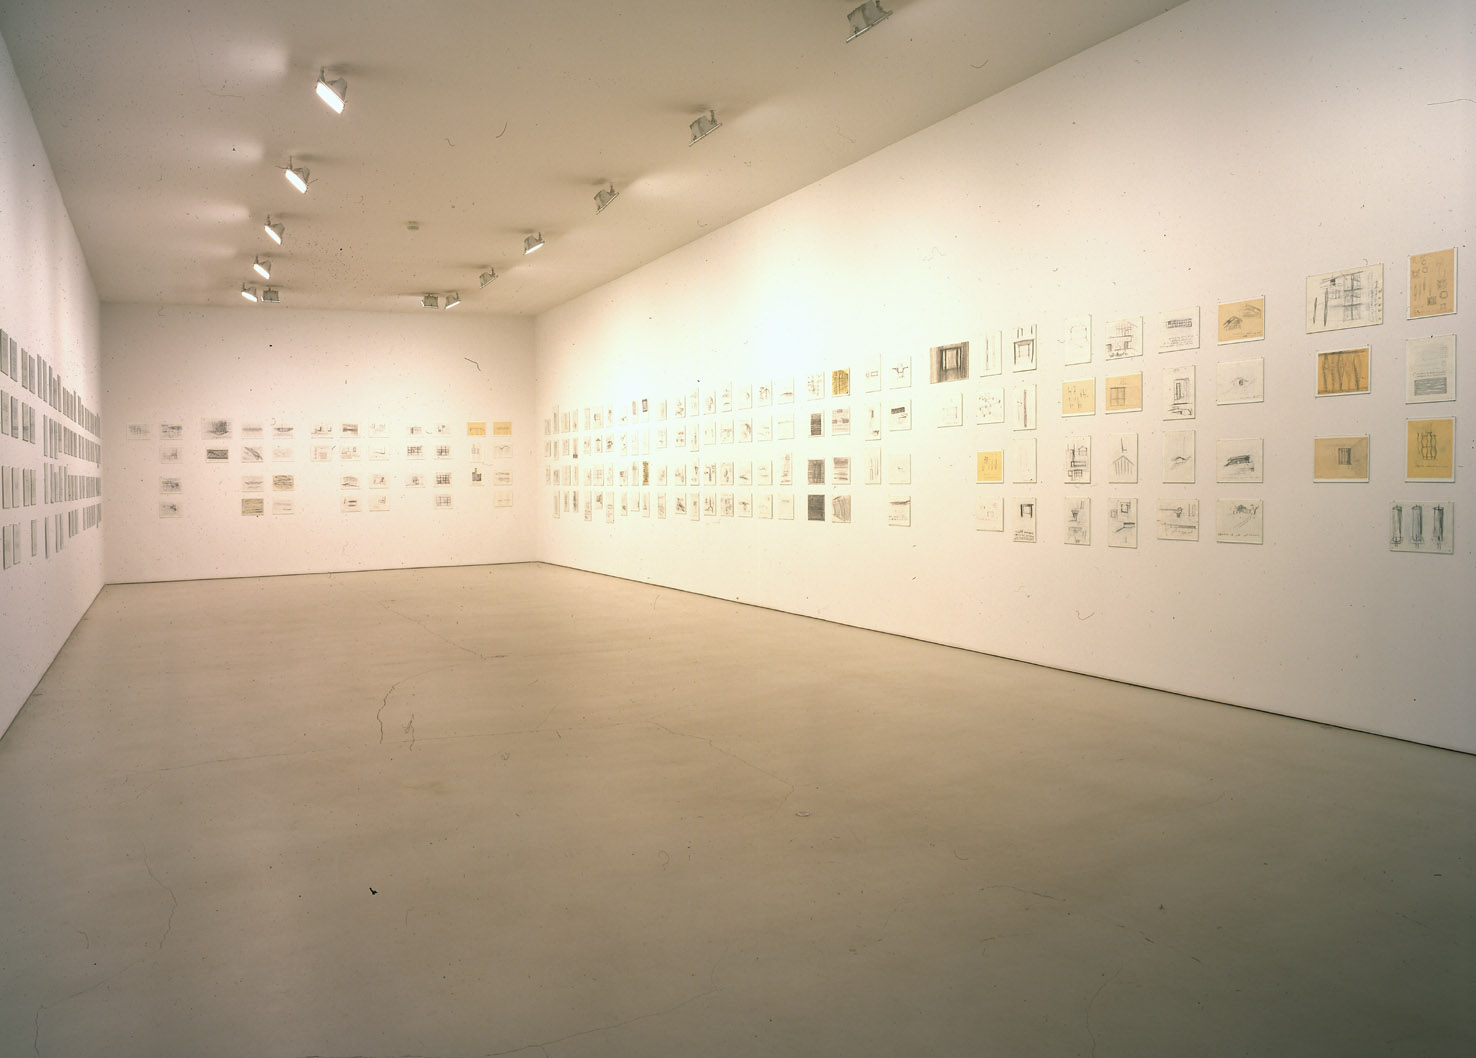 Installation shot hm 1997